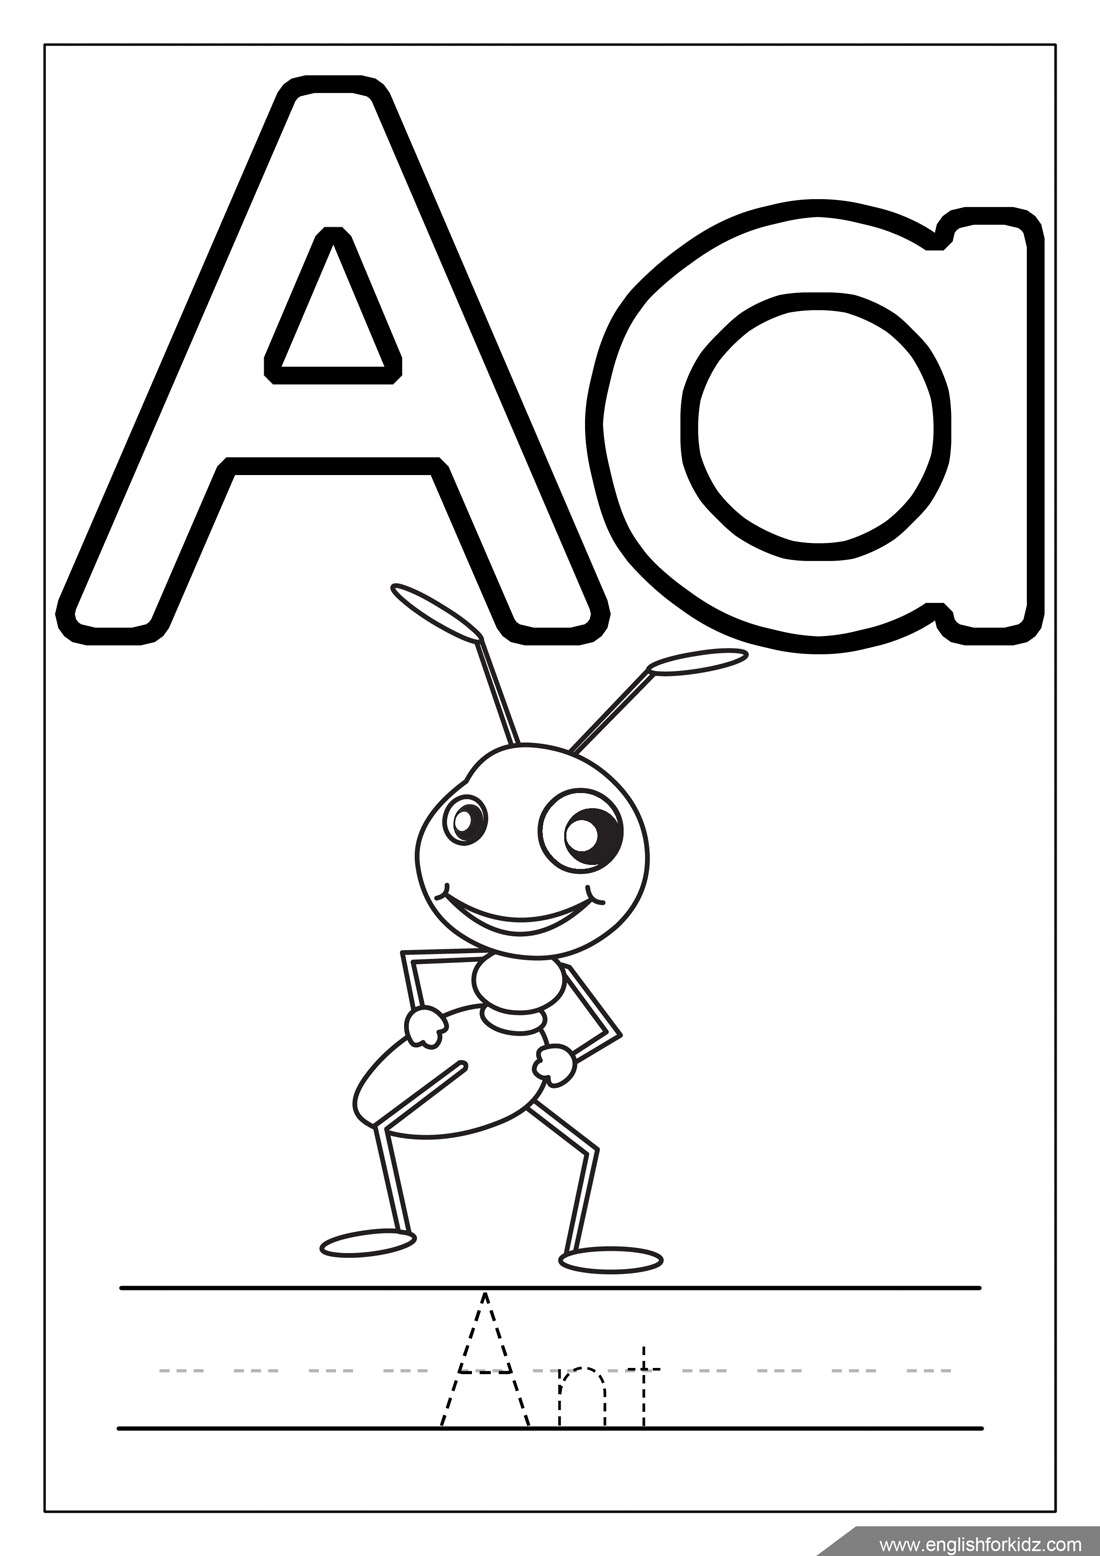 Alphabet Coloring Pages With Pictures : Printable alphabet coloring pages letters a j